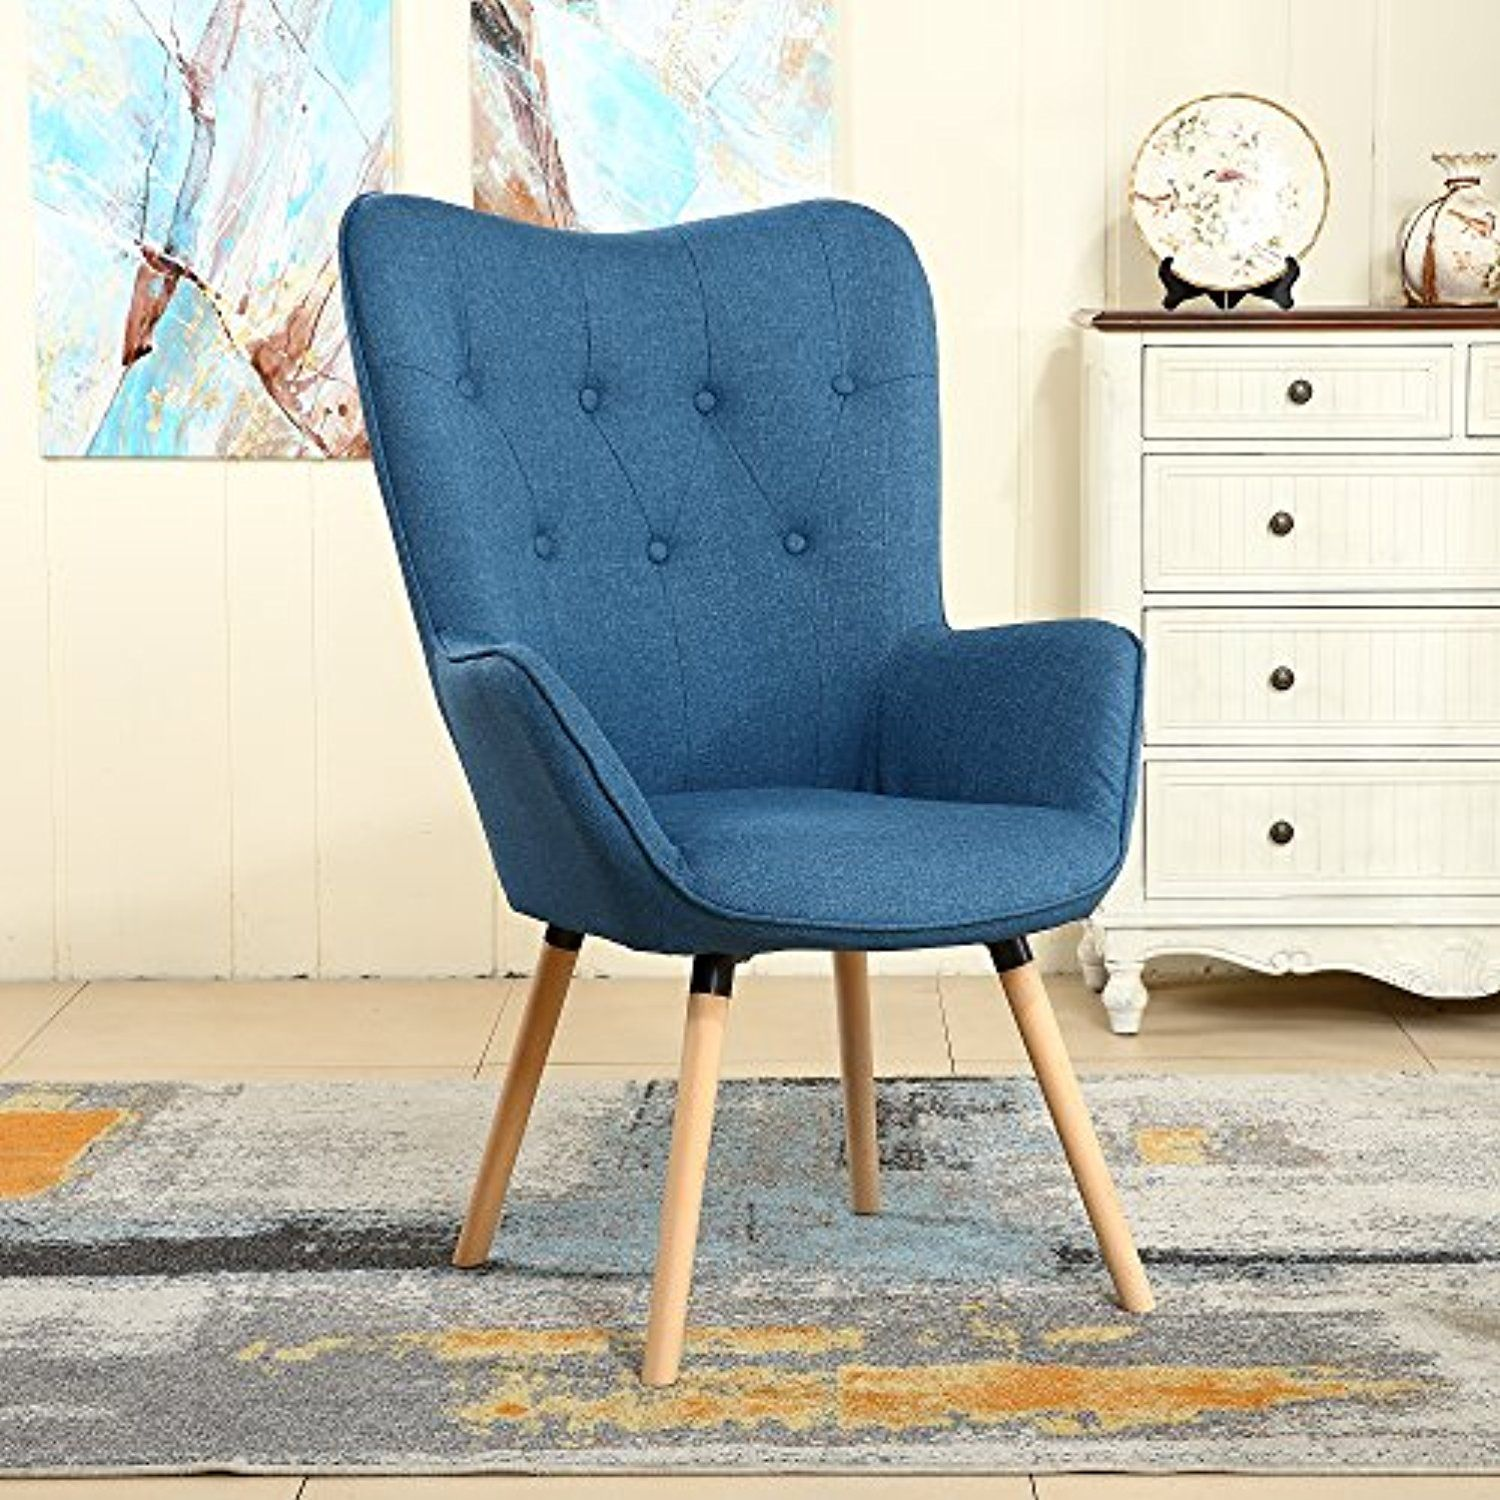 Groovy Lssbought Stylish Fabric Accent Chair Modern Muted Fabric Caraccident5 Cool Chair Designs And Ideas Caraccident5Info